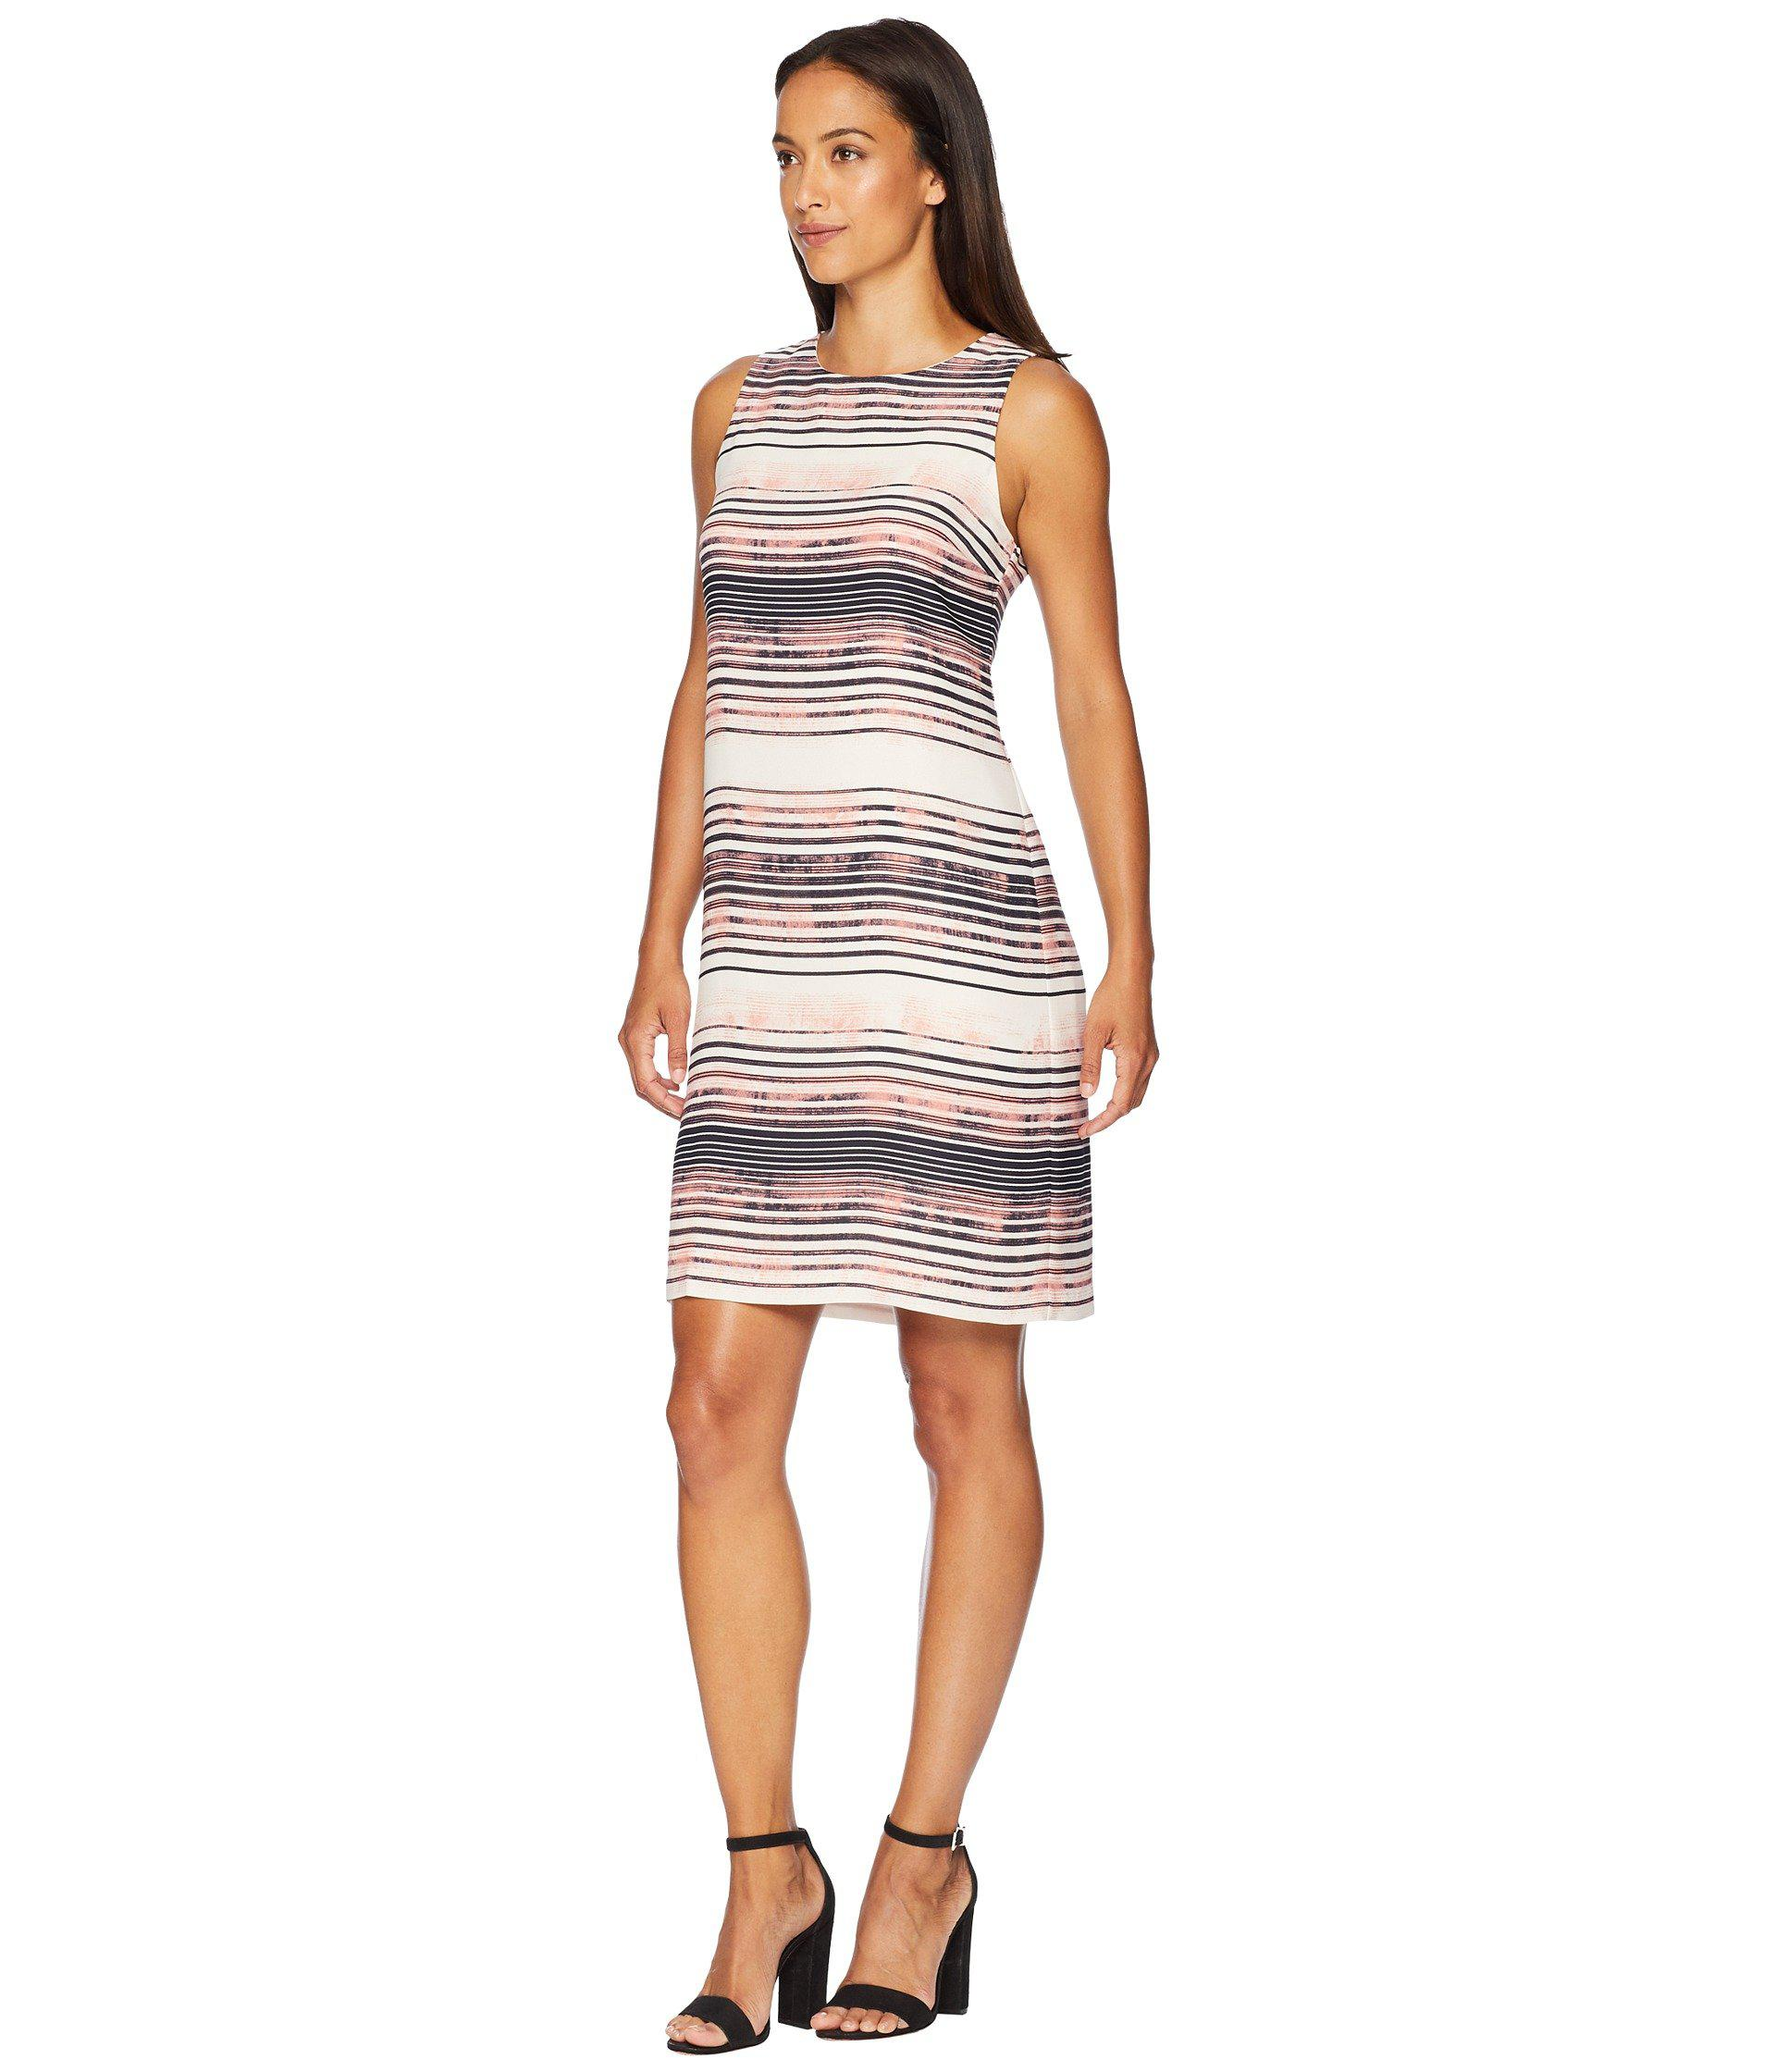 2d371f2002890c Lyst - Vince Camuto Sleeveless Ancient Muses Shift Dress - Save 49%